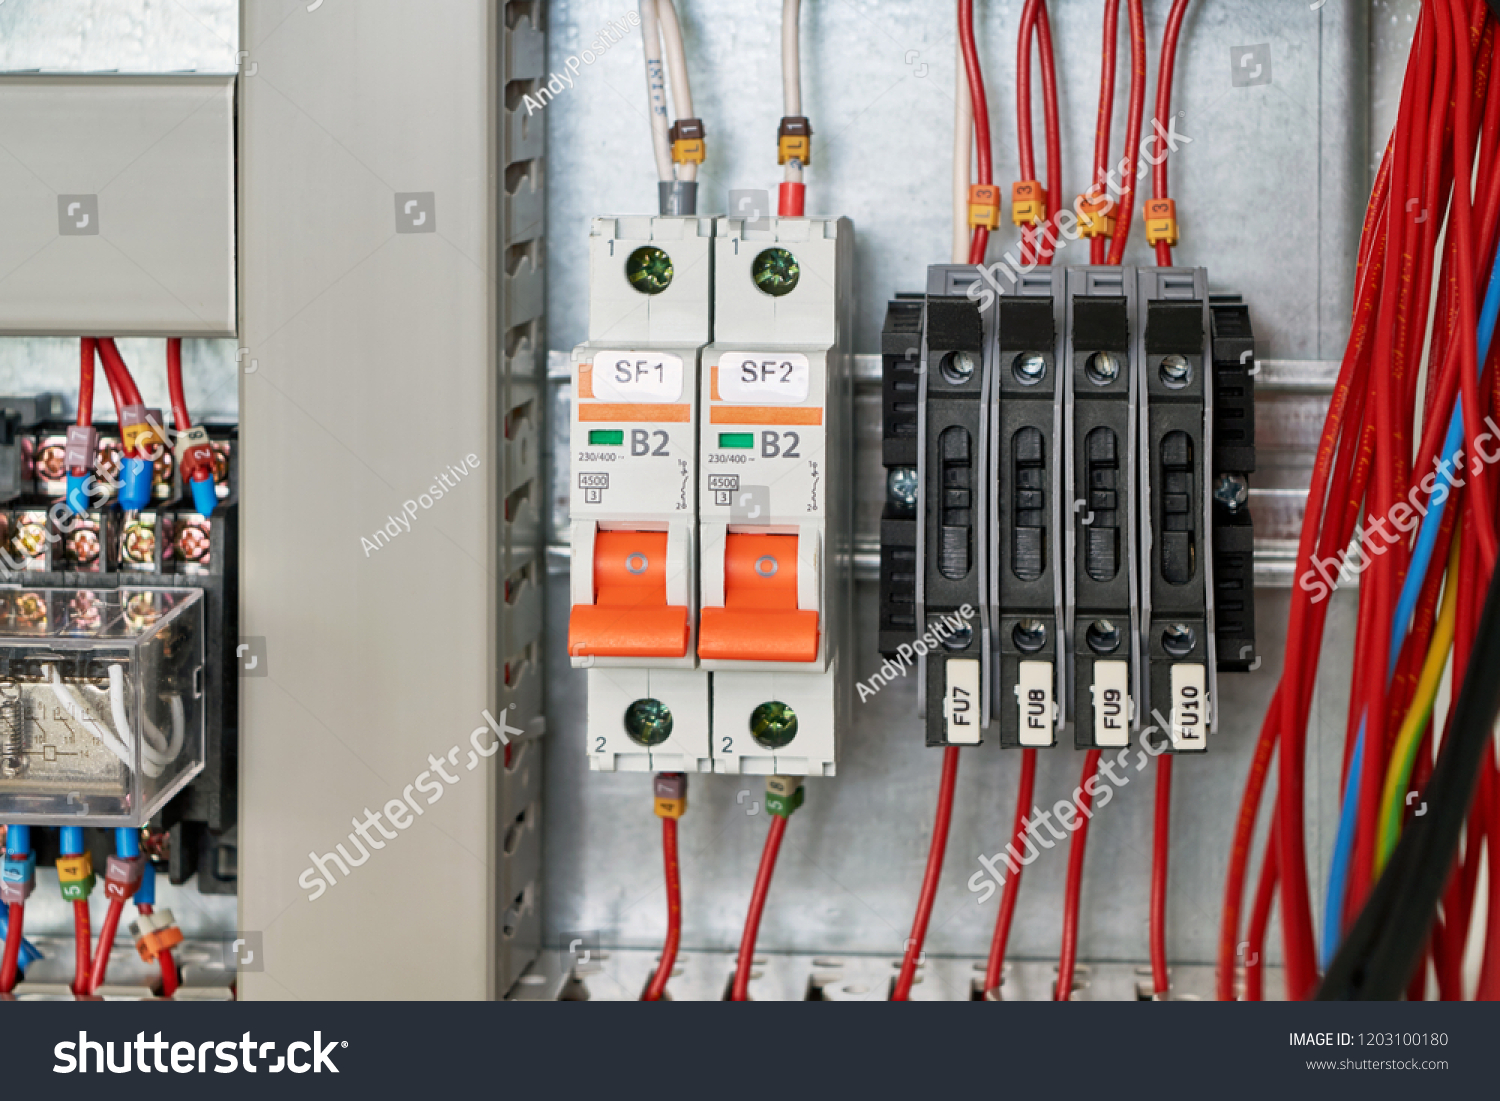 hight resolution of in the electrical cabinet circuit breakers and fuse holders intermediate relay cable channel for wiring modern electrical equipment for the safe